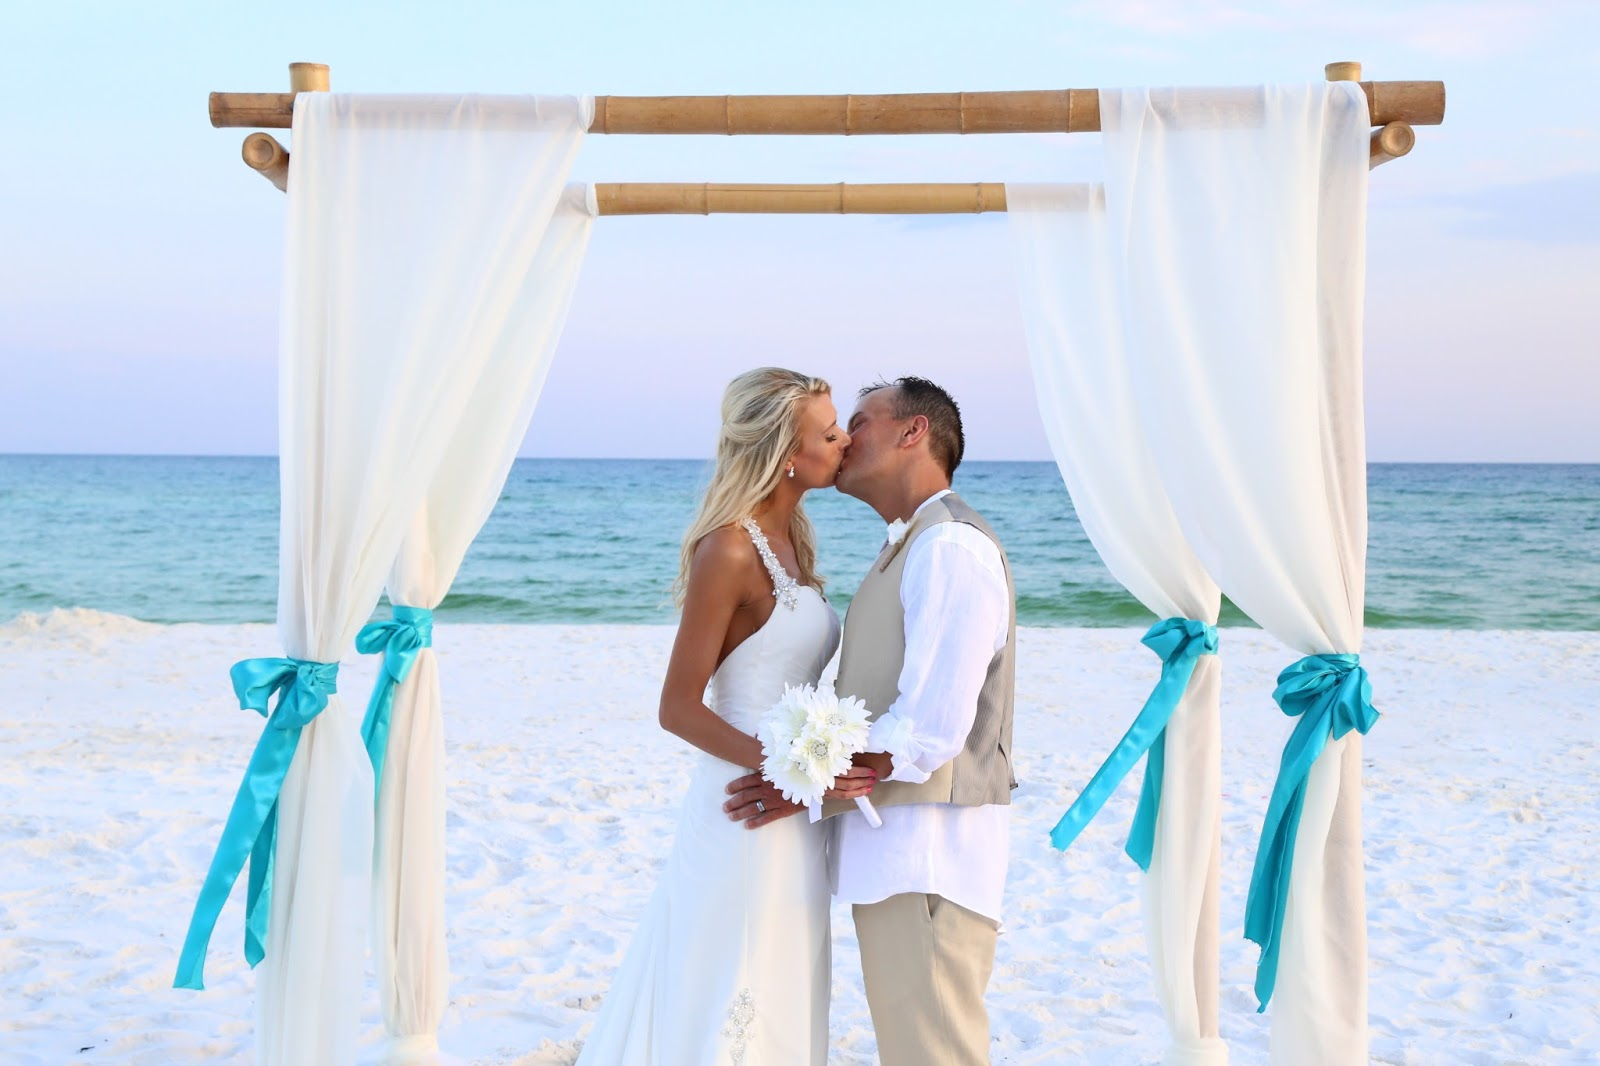 Sunshine wedding company destin beach weddings destin for East coast beach wedding locations